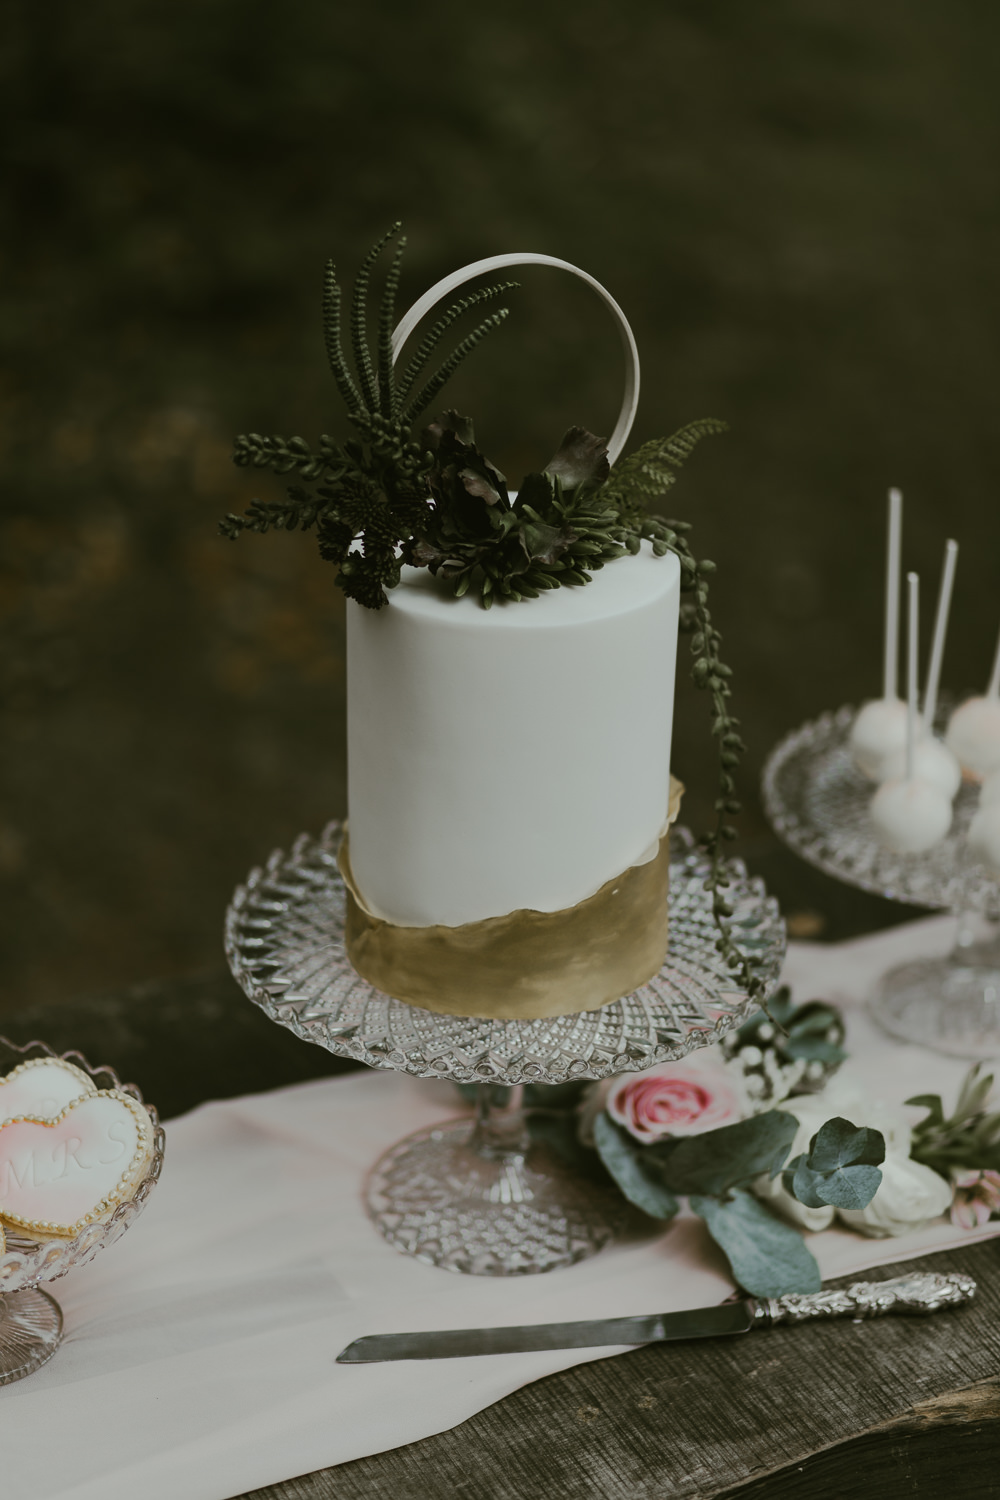 Cake Gold Leaf Hoop Topper Greenery Foliage Dreamy Woodland Wedding Ideas Jasmine Andrews Photography